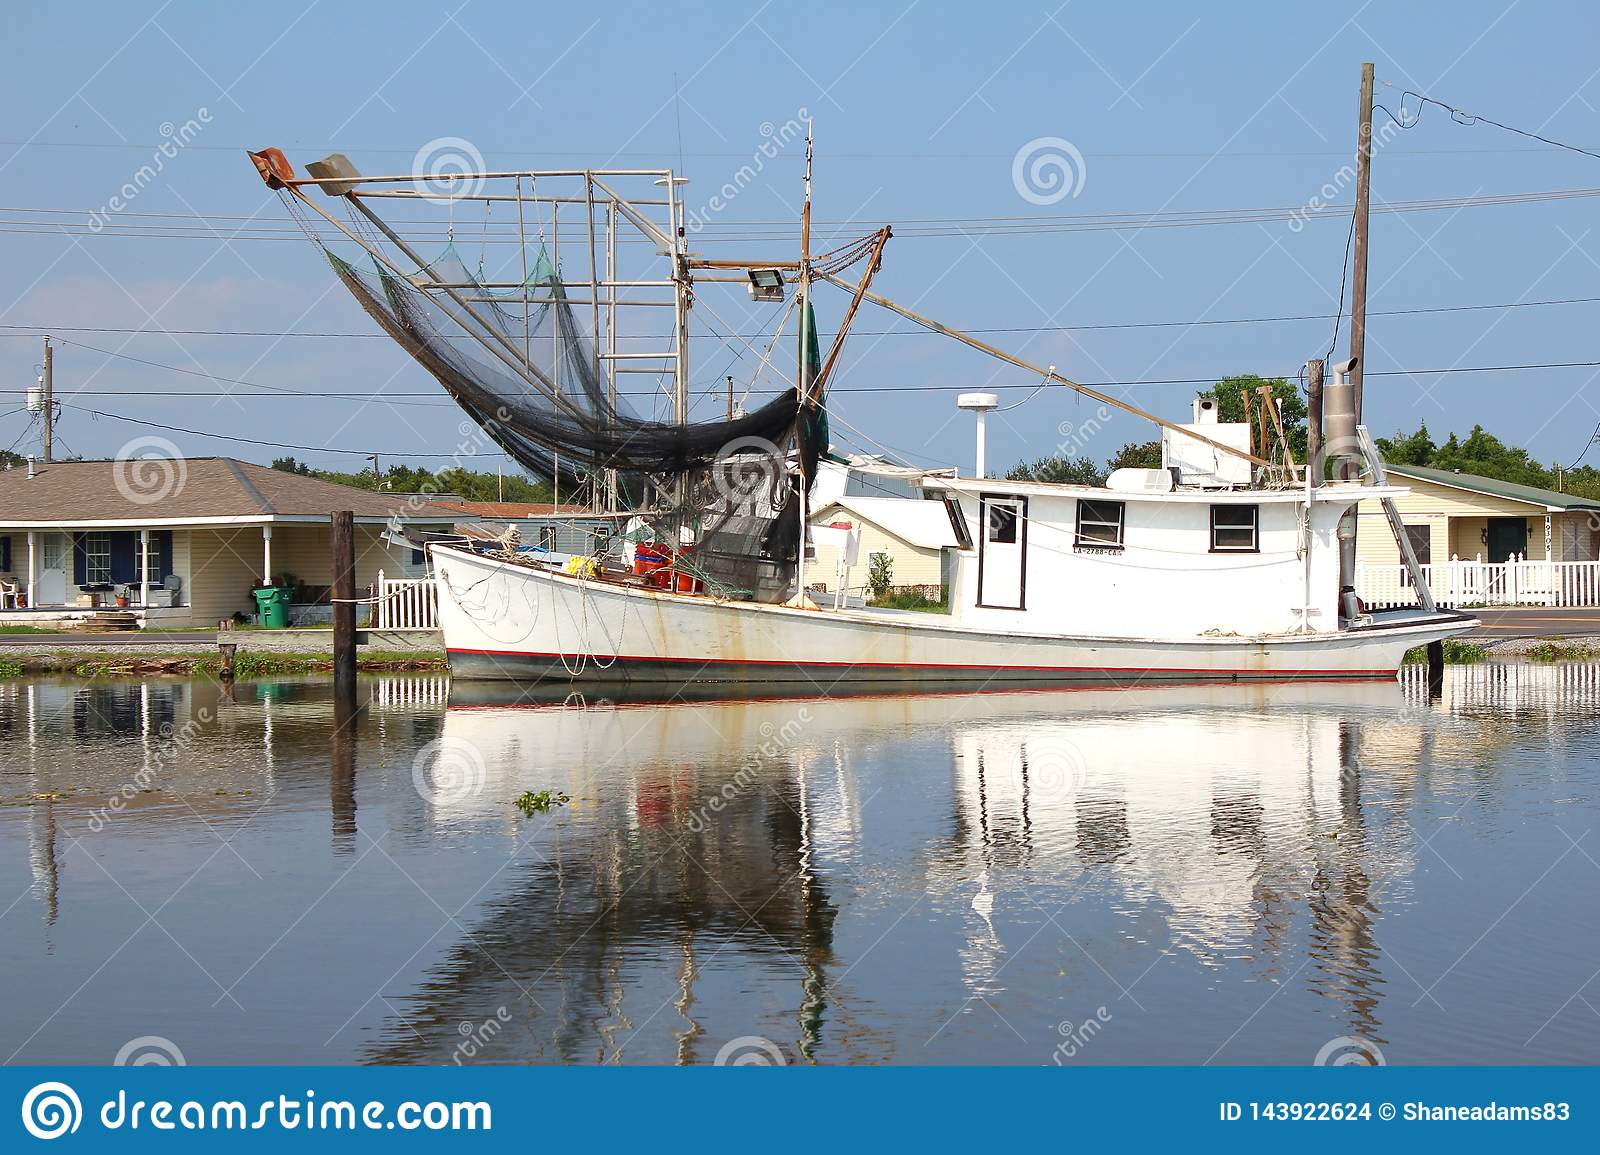 Louisiana-Garnelen-Boot